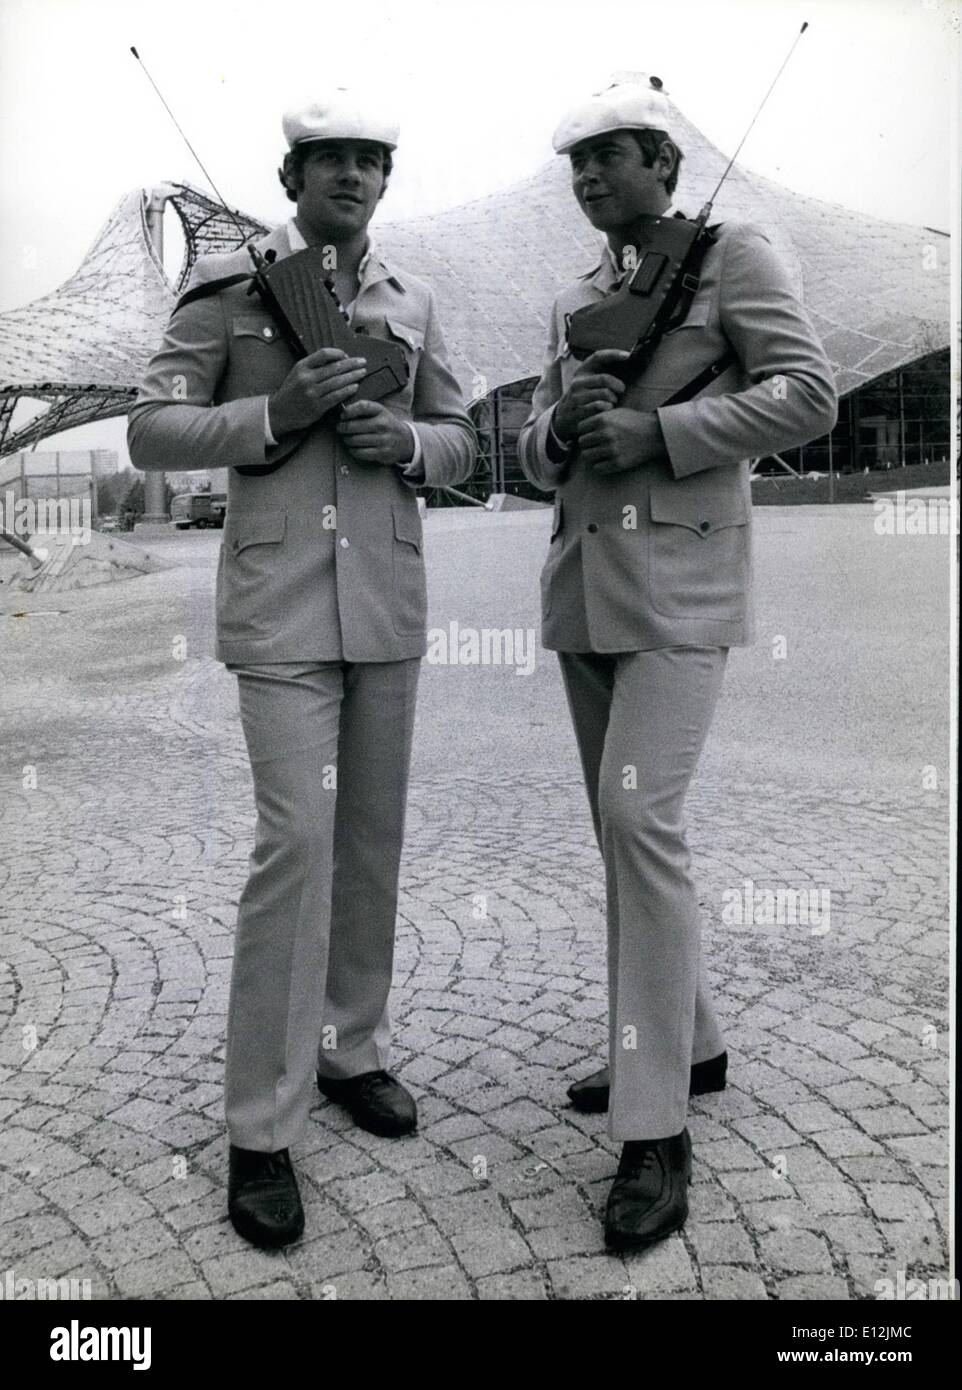 Feb. 24, 2012 - Fashionable Safari look uniforms for the Olympic Constabulary. During the Olympic Summer Games about - Stock Image